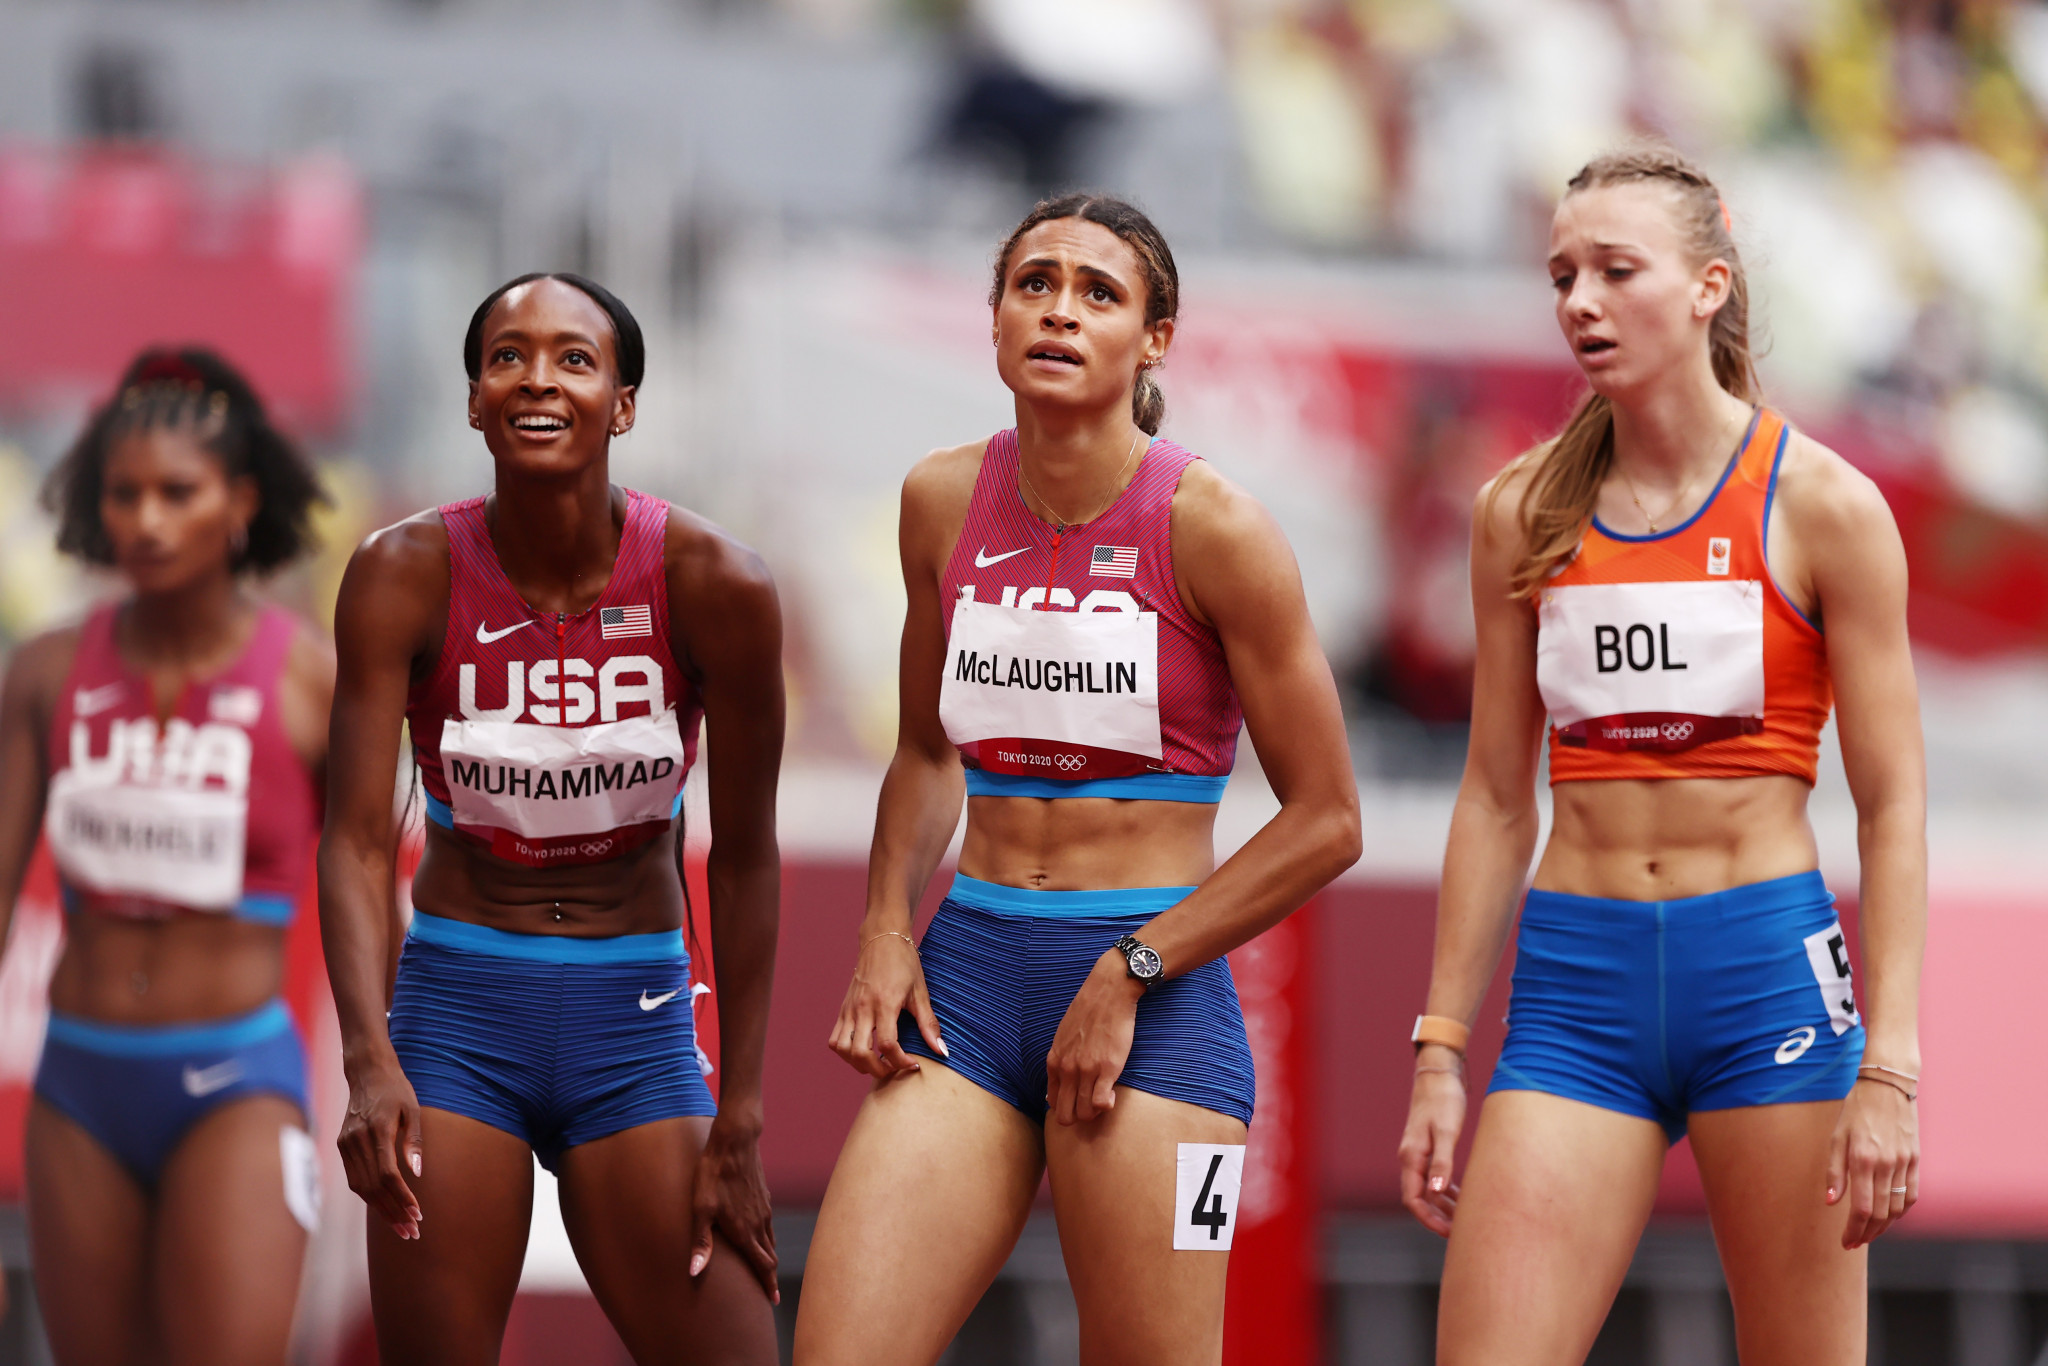 Second-place Dalilah Muhammad of the United States, left, and Dutchwoman Femke Bol, right, completed the podium and both ran times which until this year would have been world record-worthy ©Getty Images